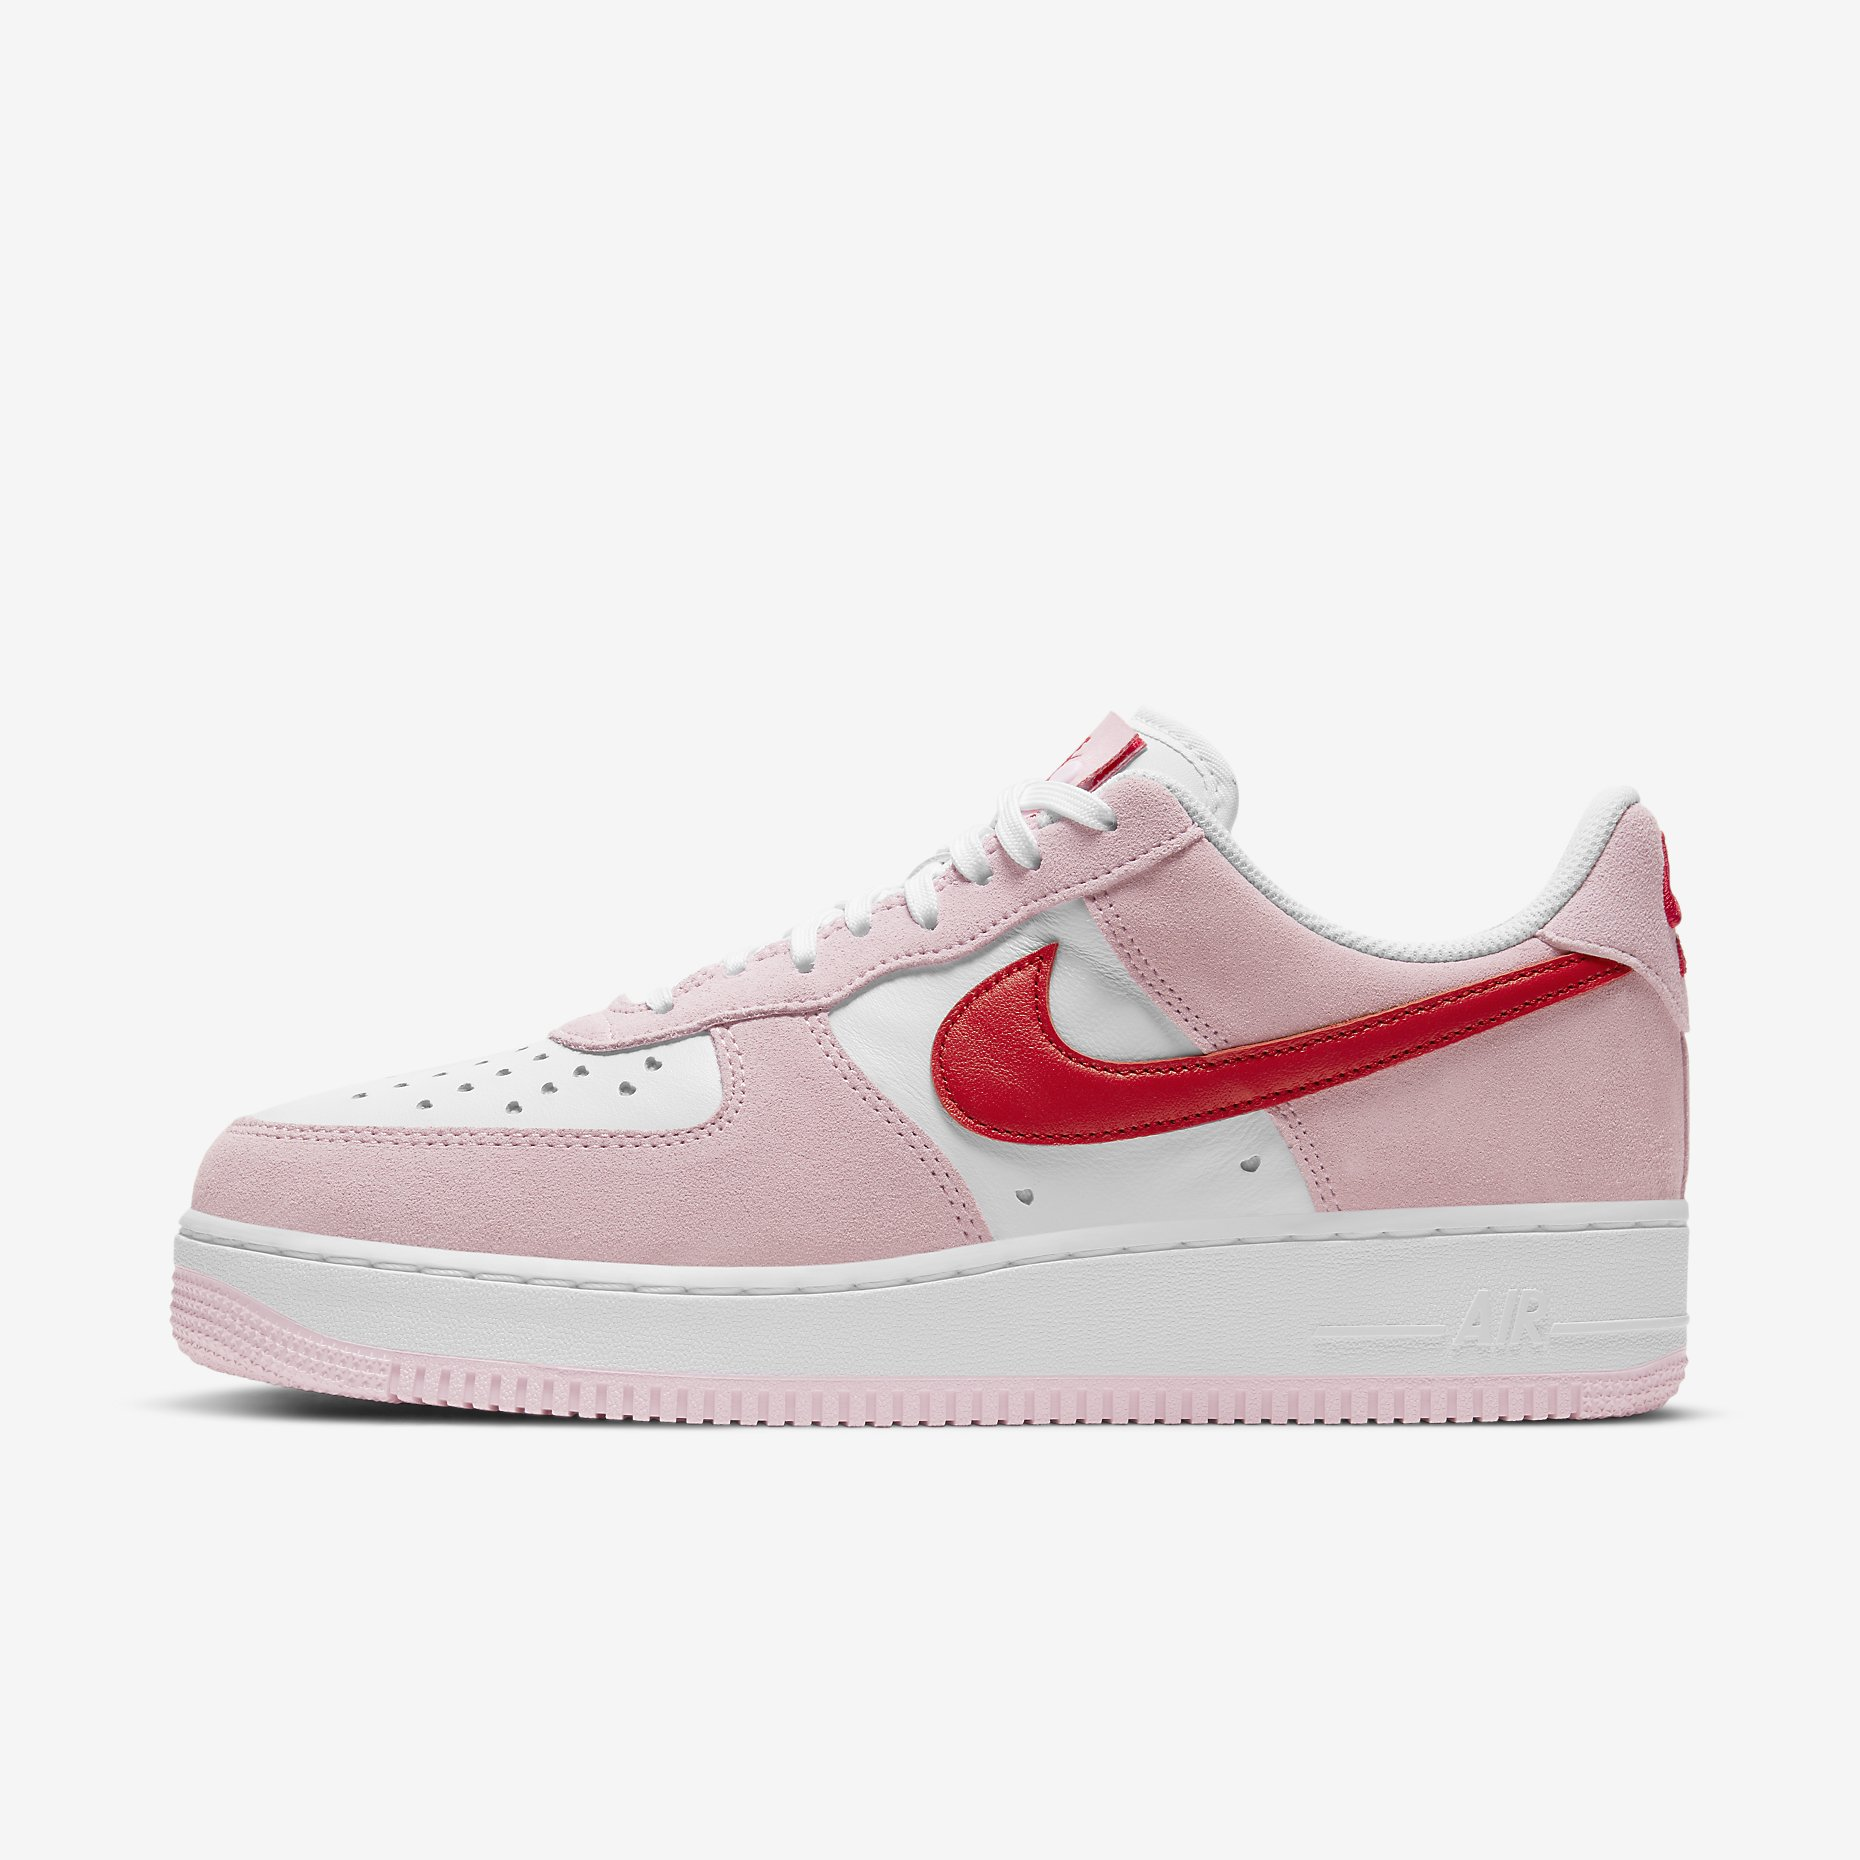 Nike Air Force 1 '07 QS 'Valentine's Day'}